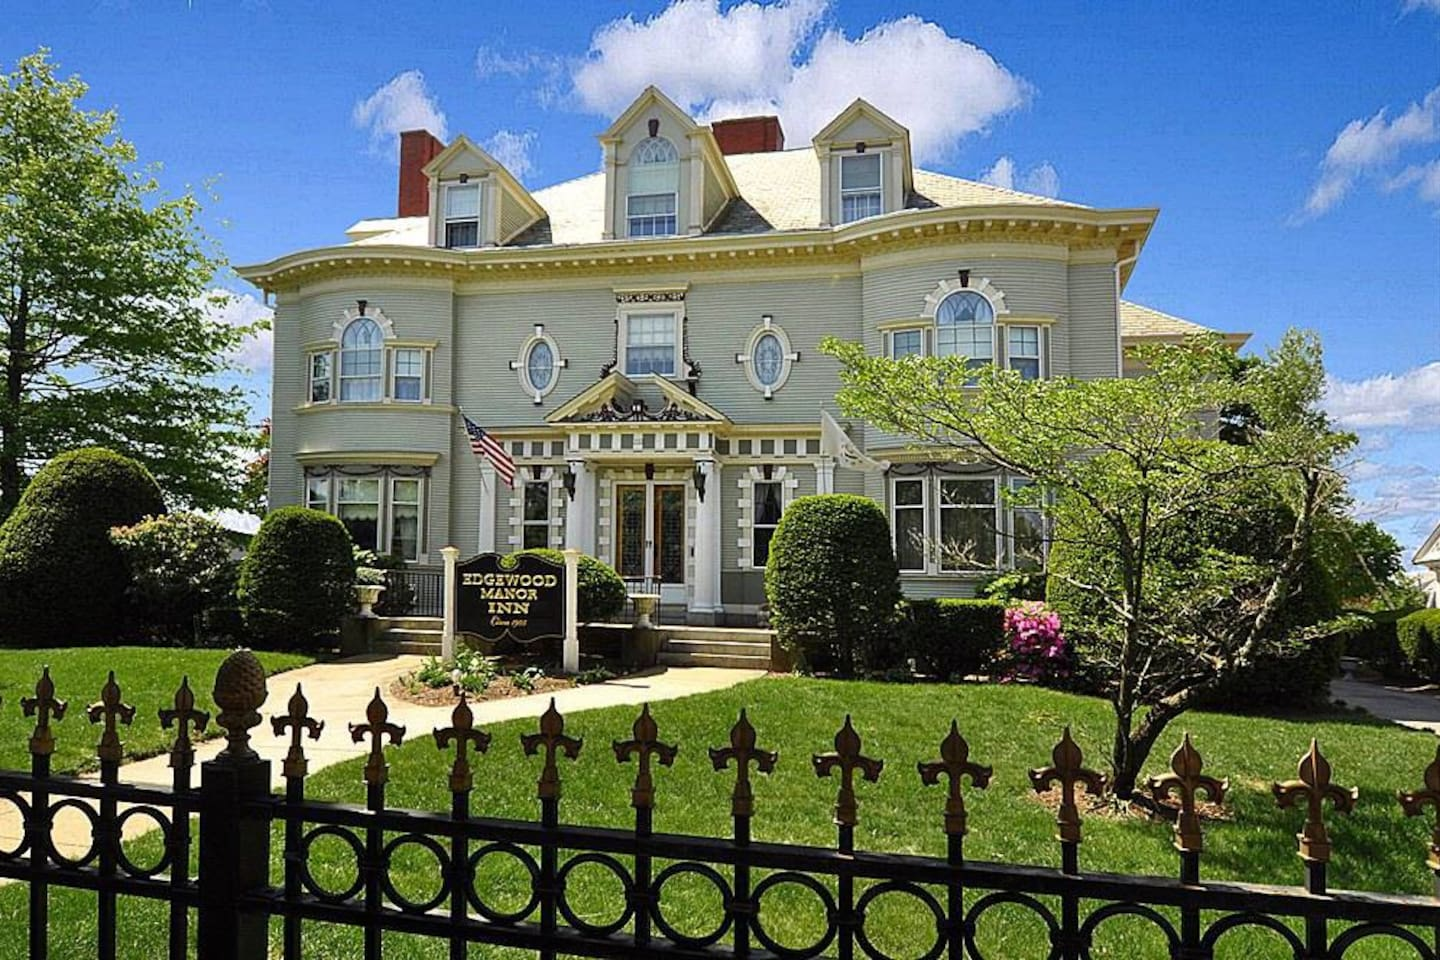 1905 Greek Revival Mansion  Edgewood Manor INN  awaits you.